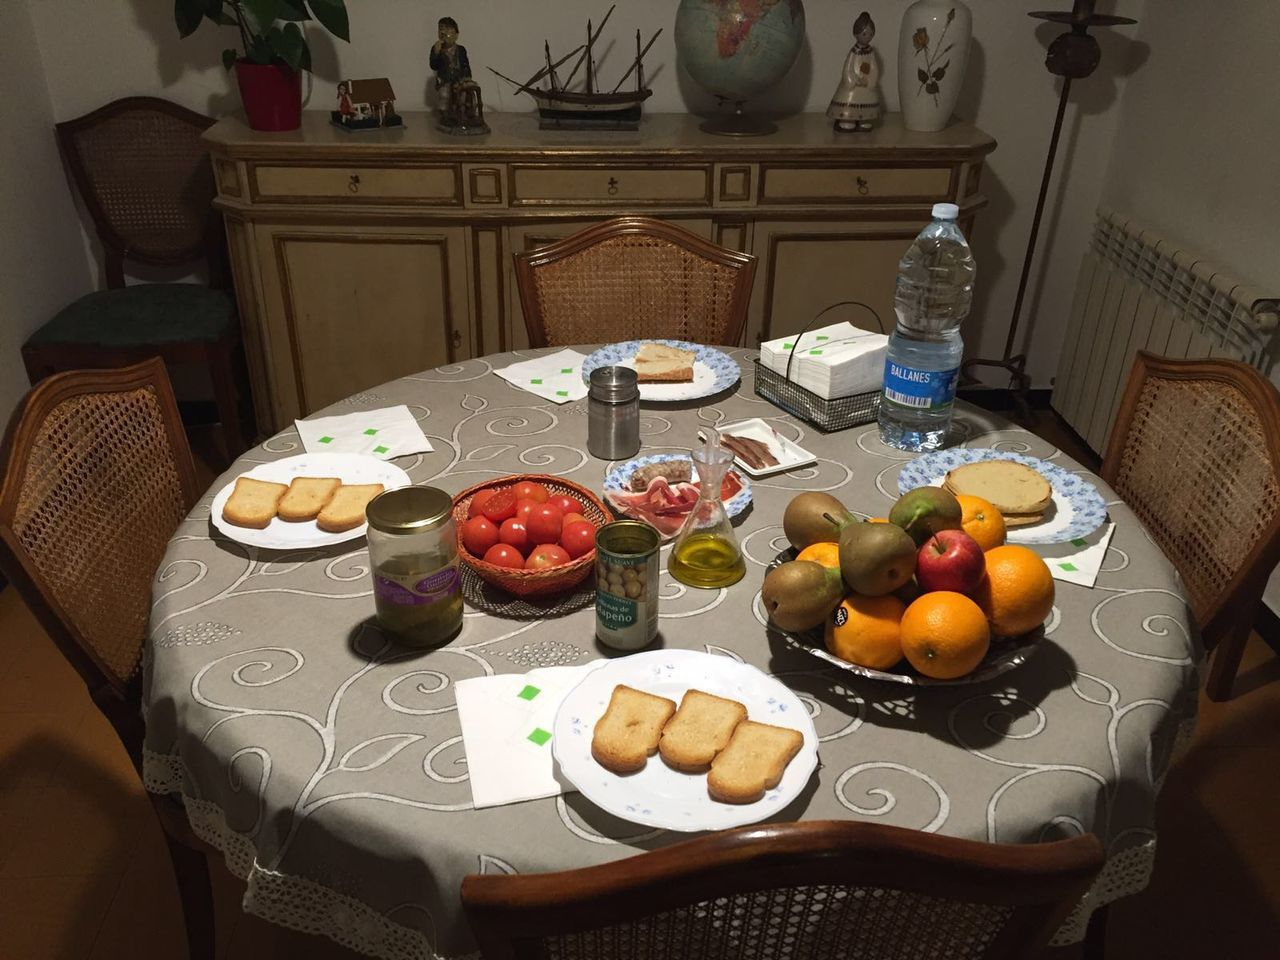 Apple - Fruit Bowl Drinking Glass Food Food And Drink Freshness Fruit Healthy Eating Home Interior Indoors  No People Plate Ready-to-eat SPAIN Table Tablecloth Tapas